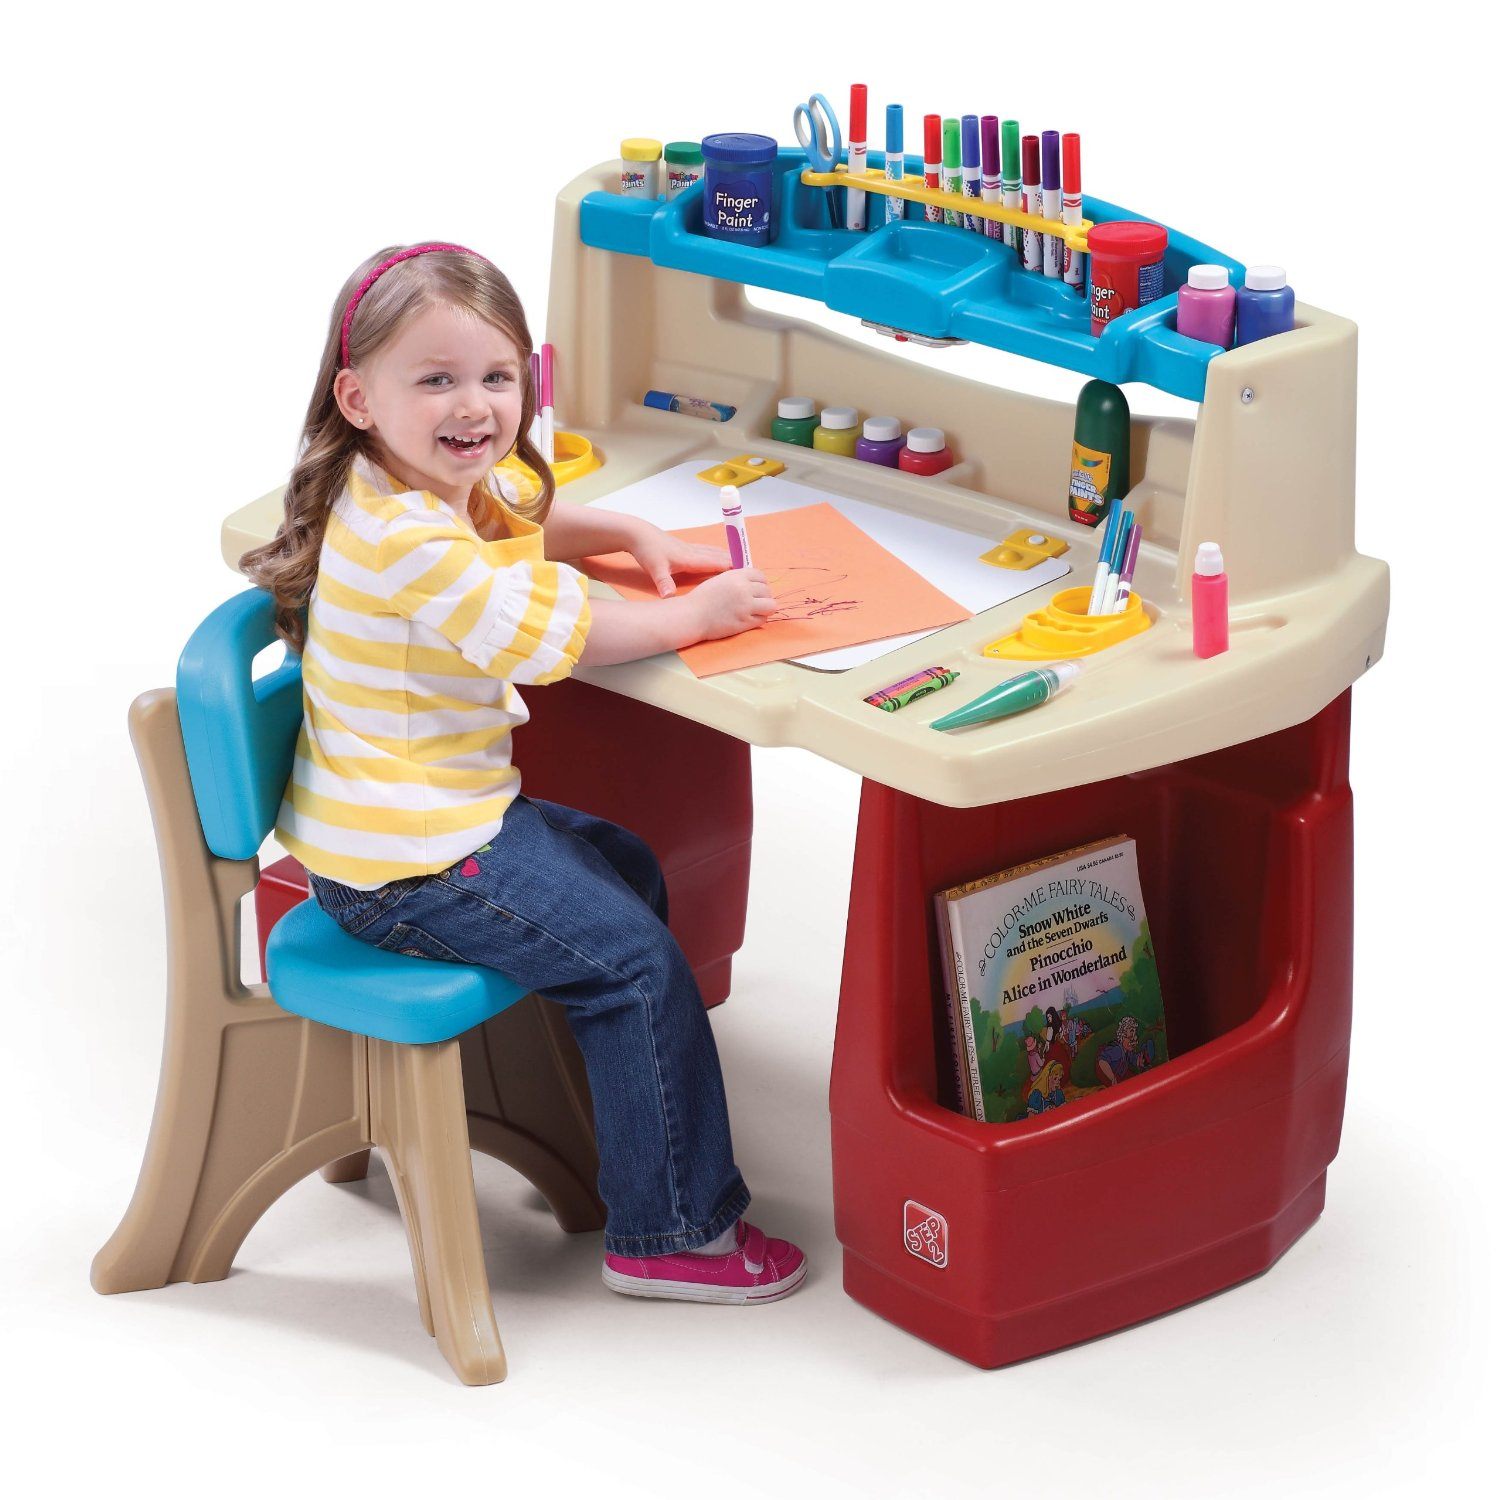 Step2 Deluxe Art Master Kids Desk 51 51 Reg 89 99